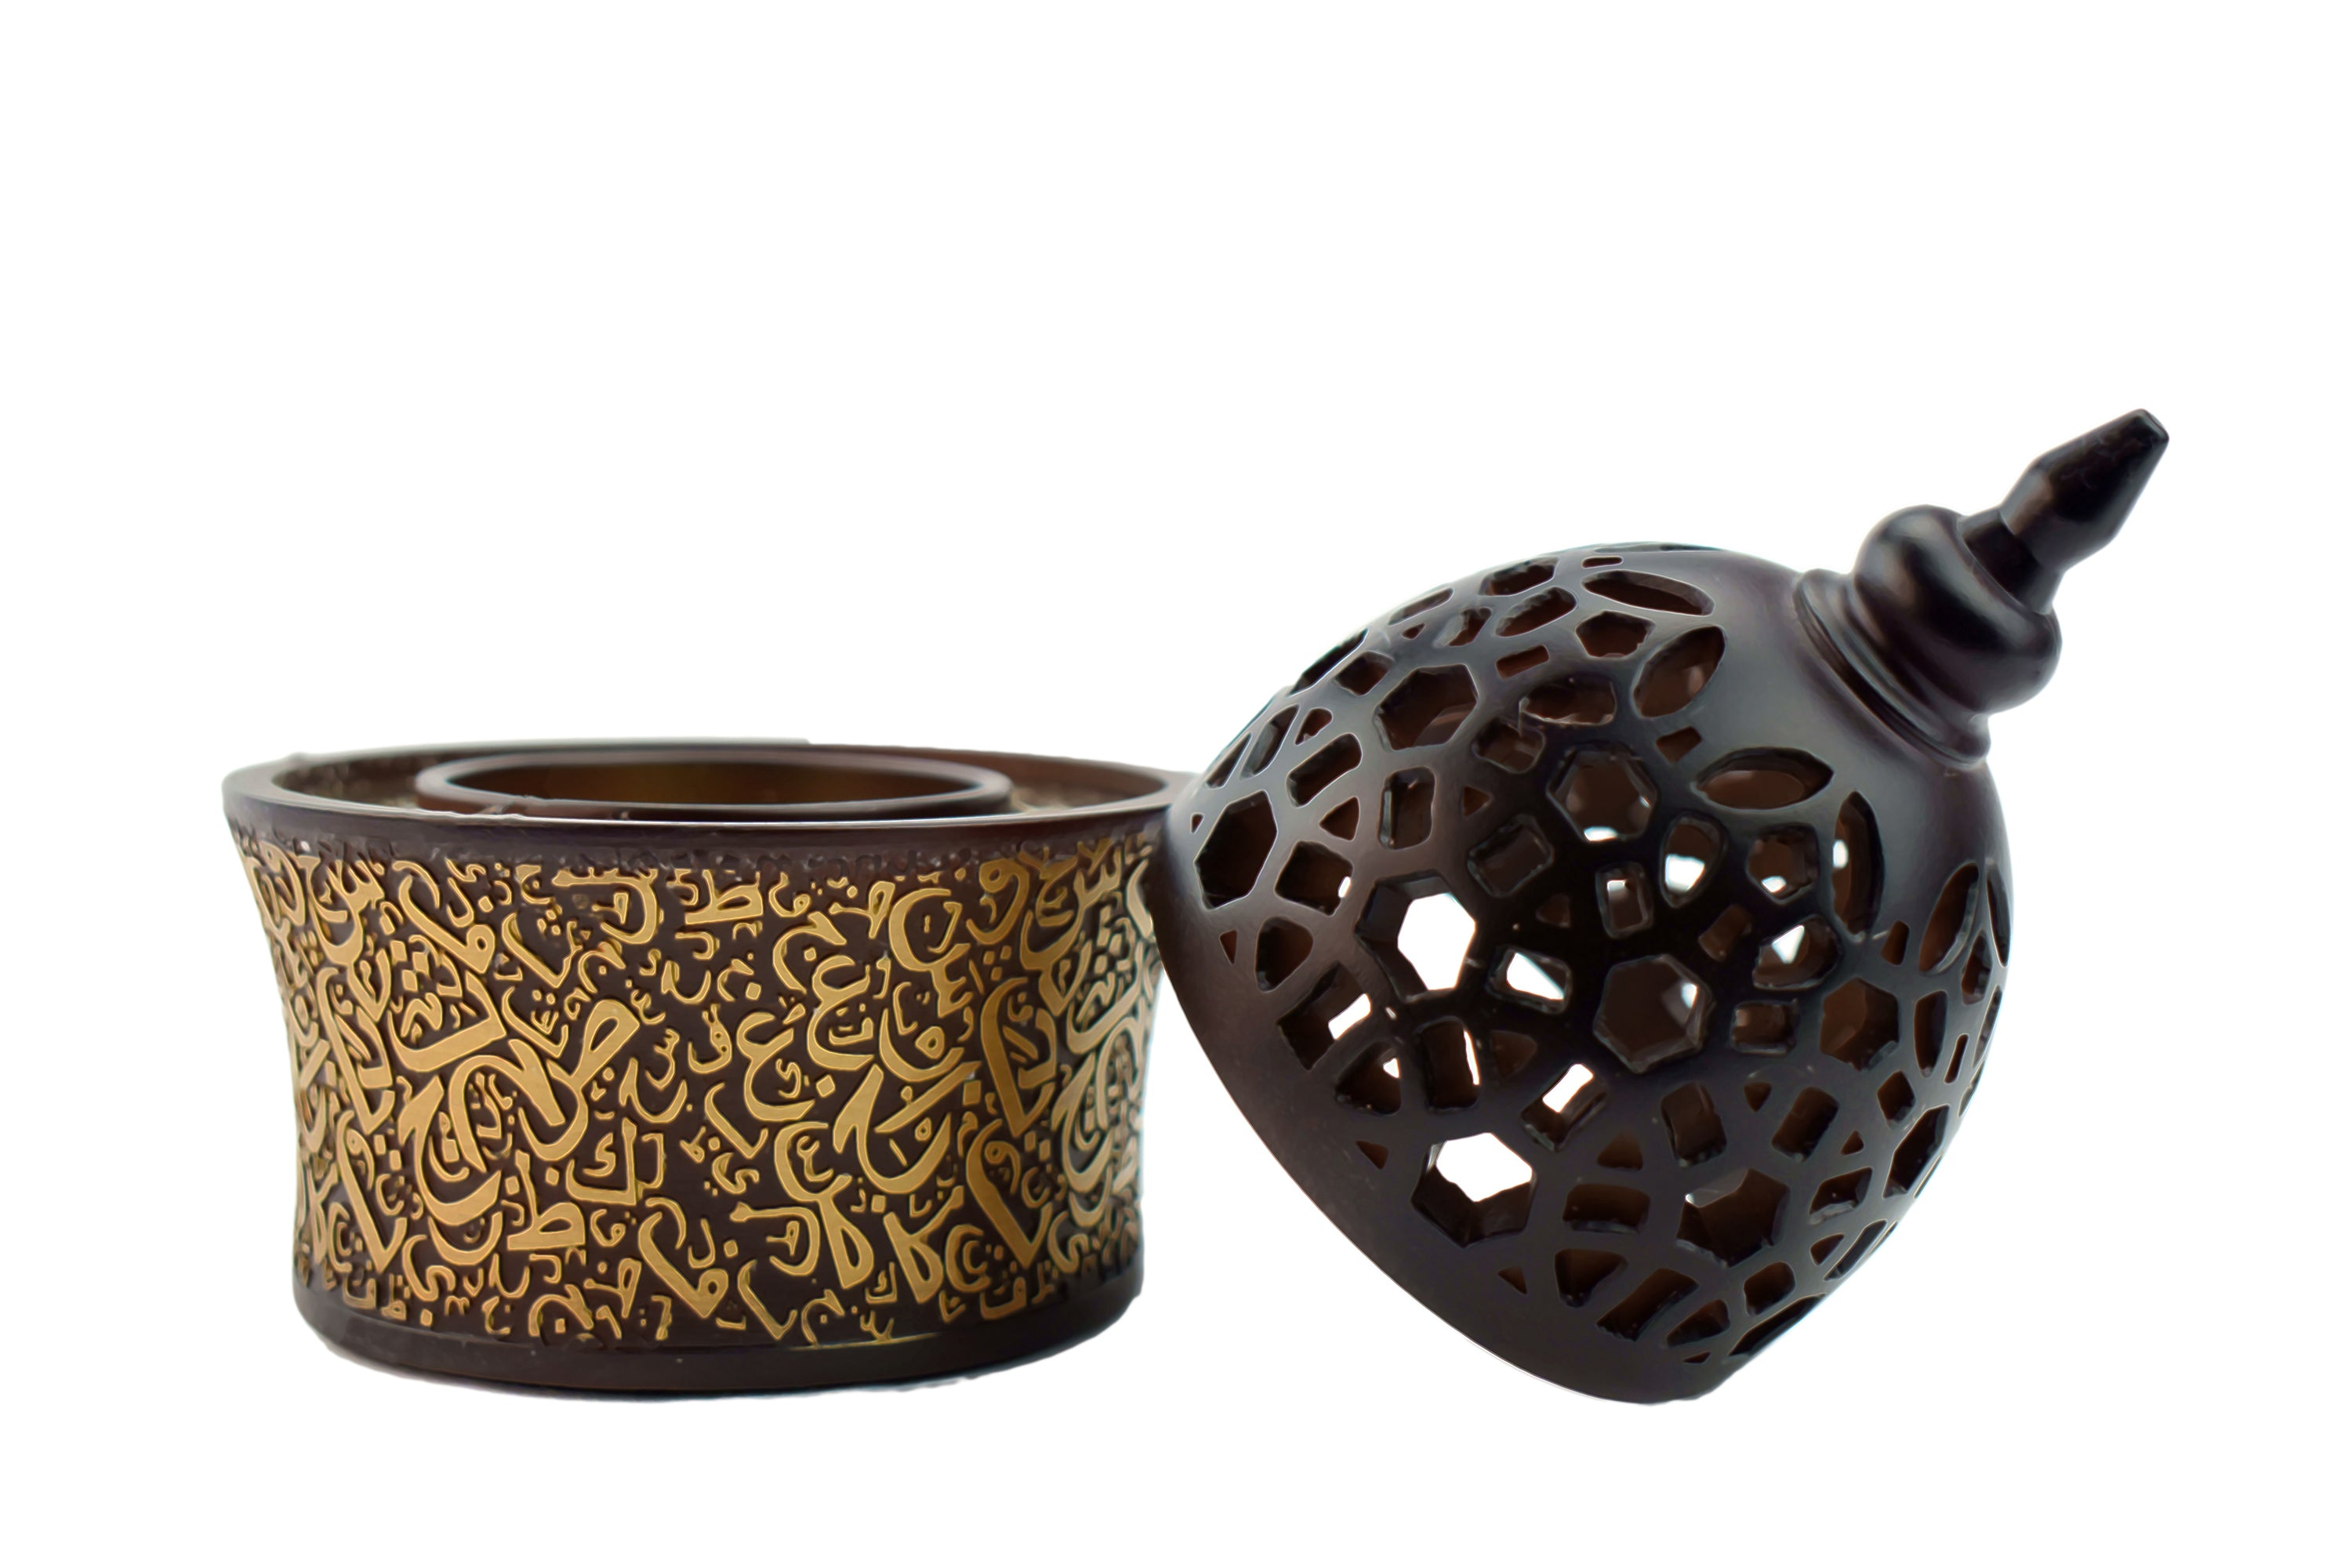 Calligraphy Style Closed Incense Bakhoor Burner - Brown - Intense oud